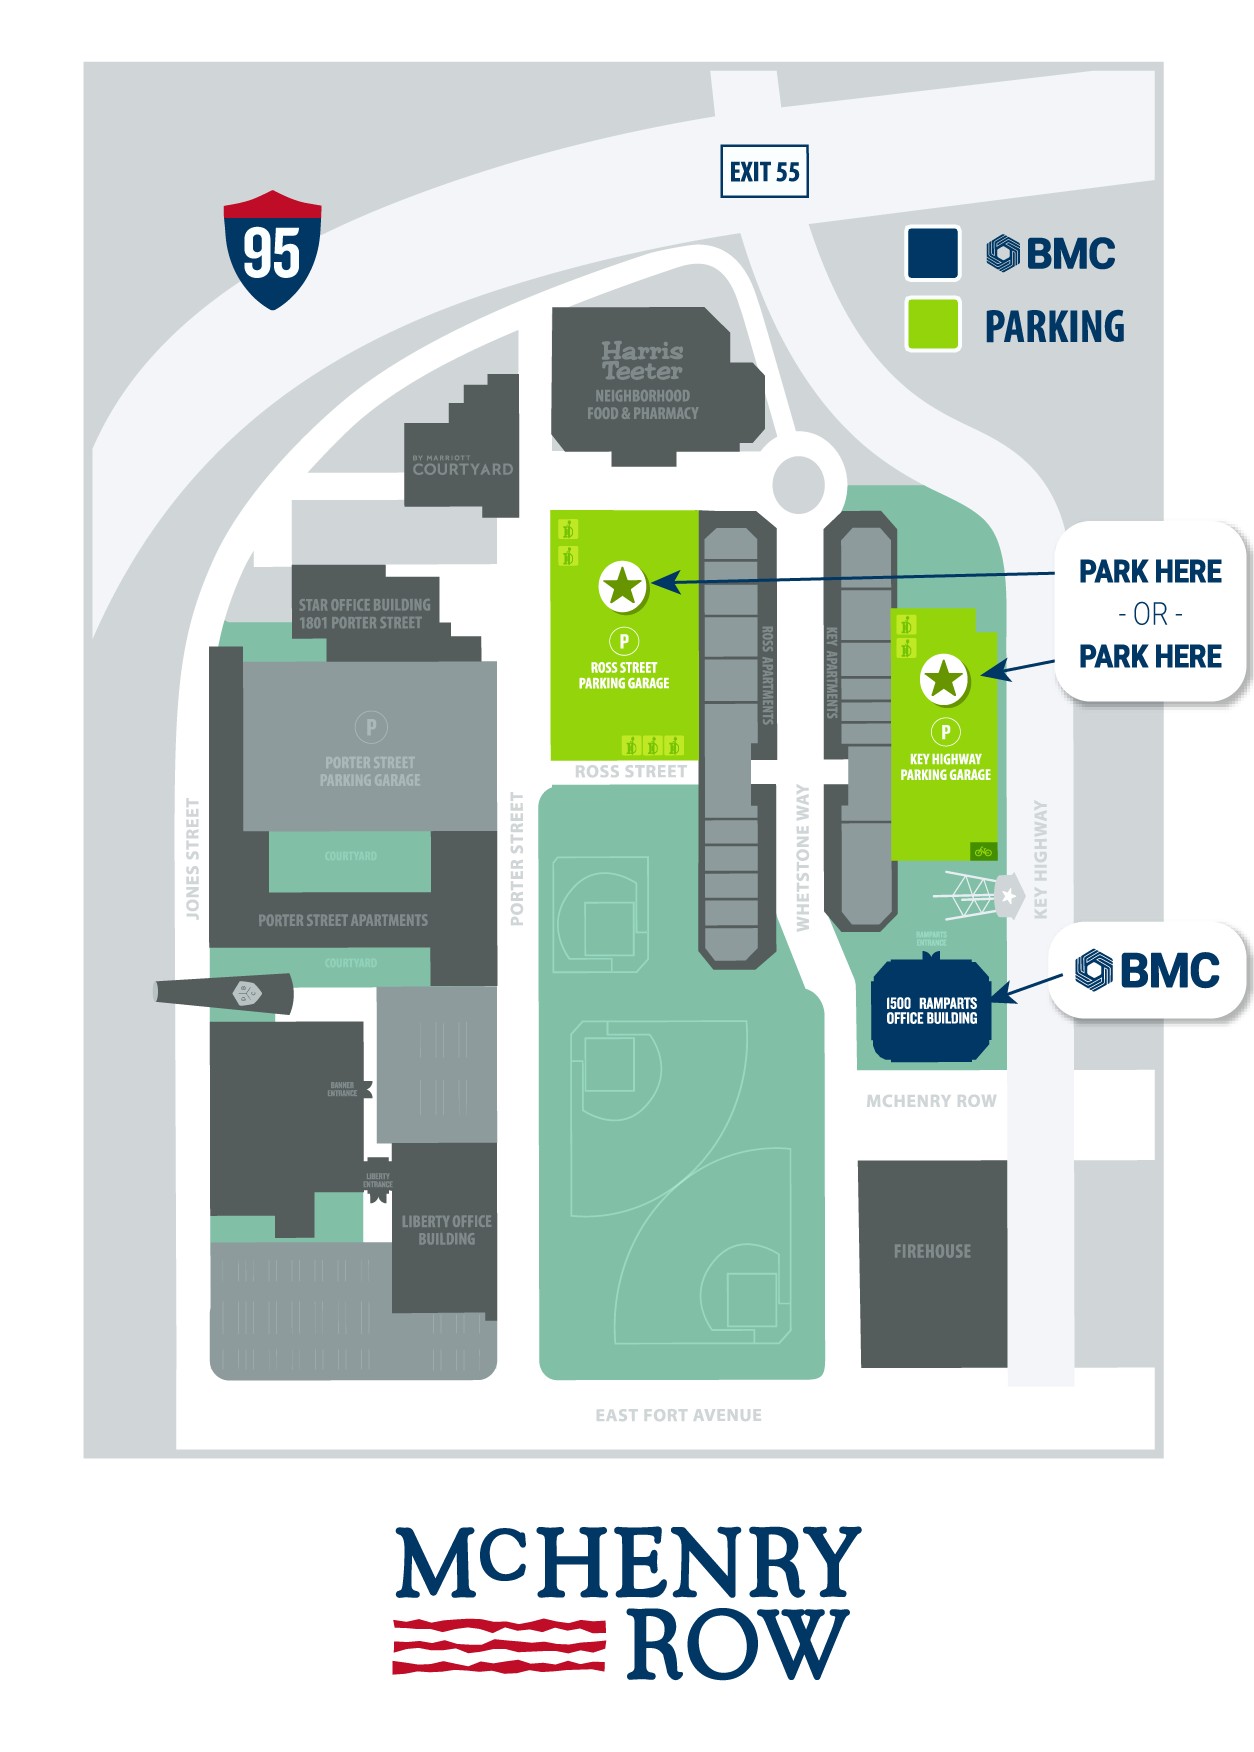 bmc-PARKING-MAP